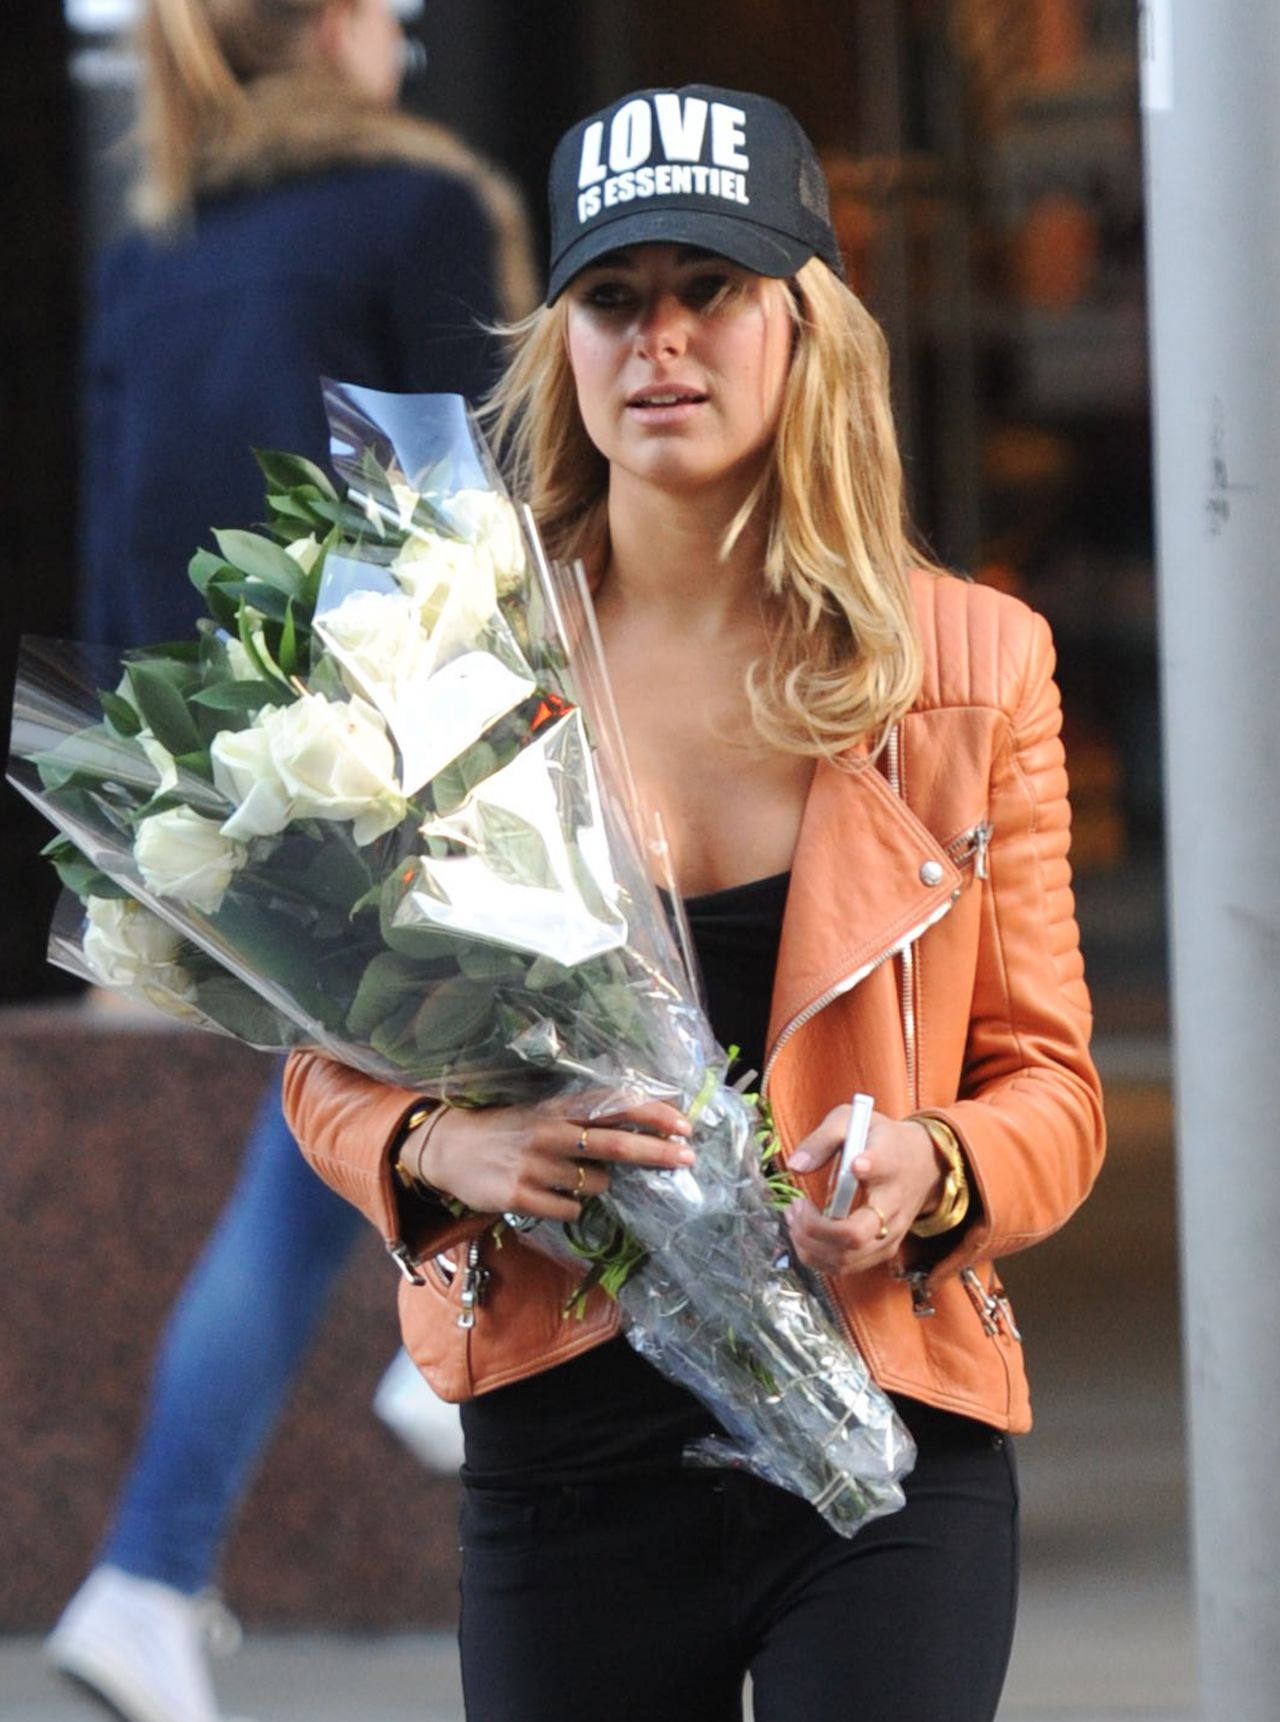 Kimberley Garner Street Style  - Buying Flowers in London, February 2014